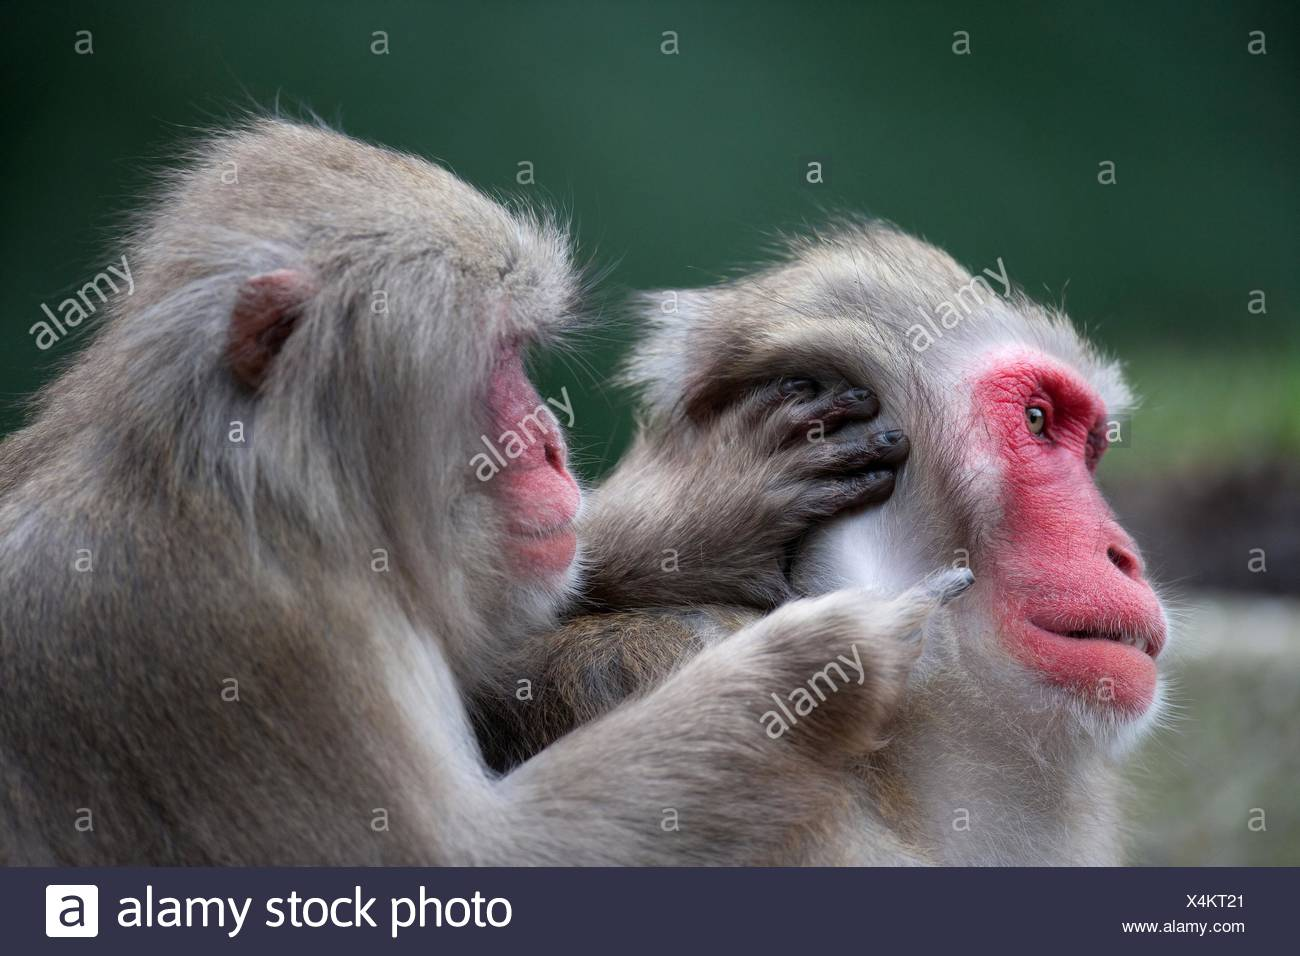 Japanese macaques - Stock Image